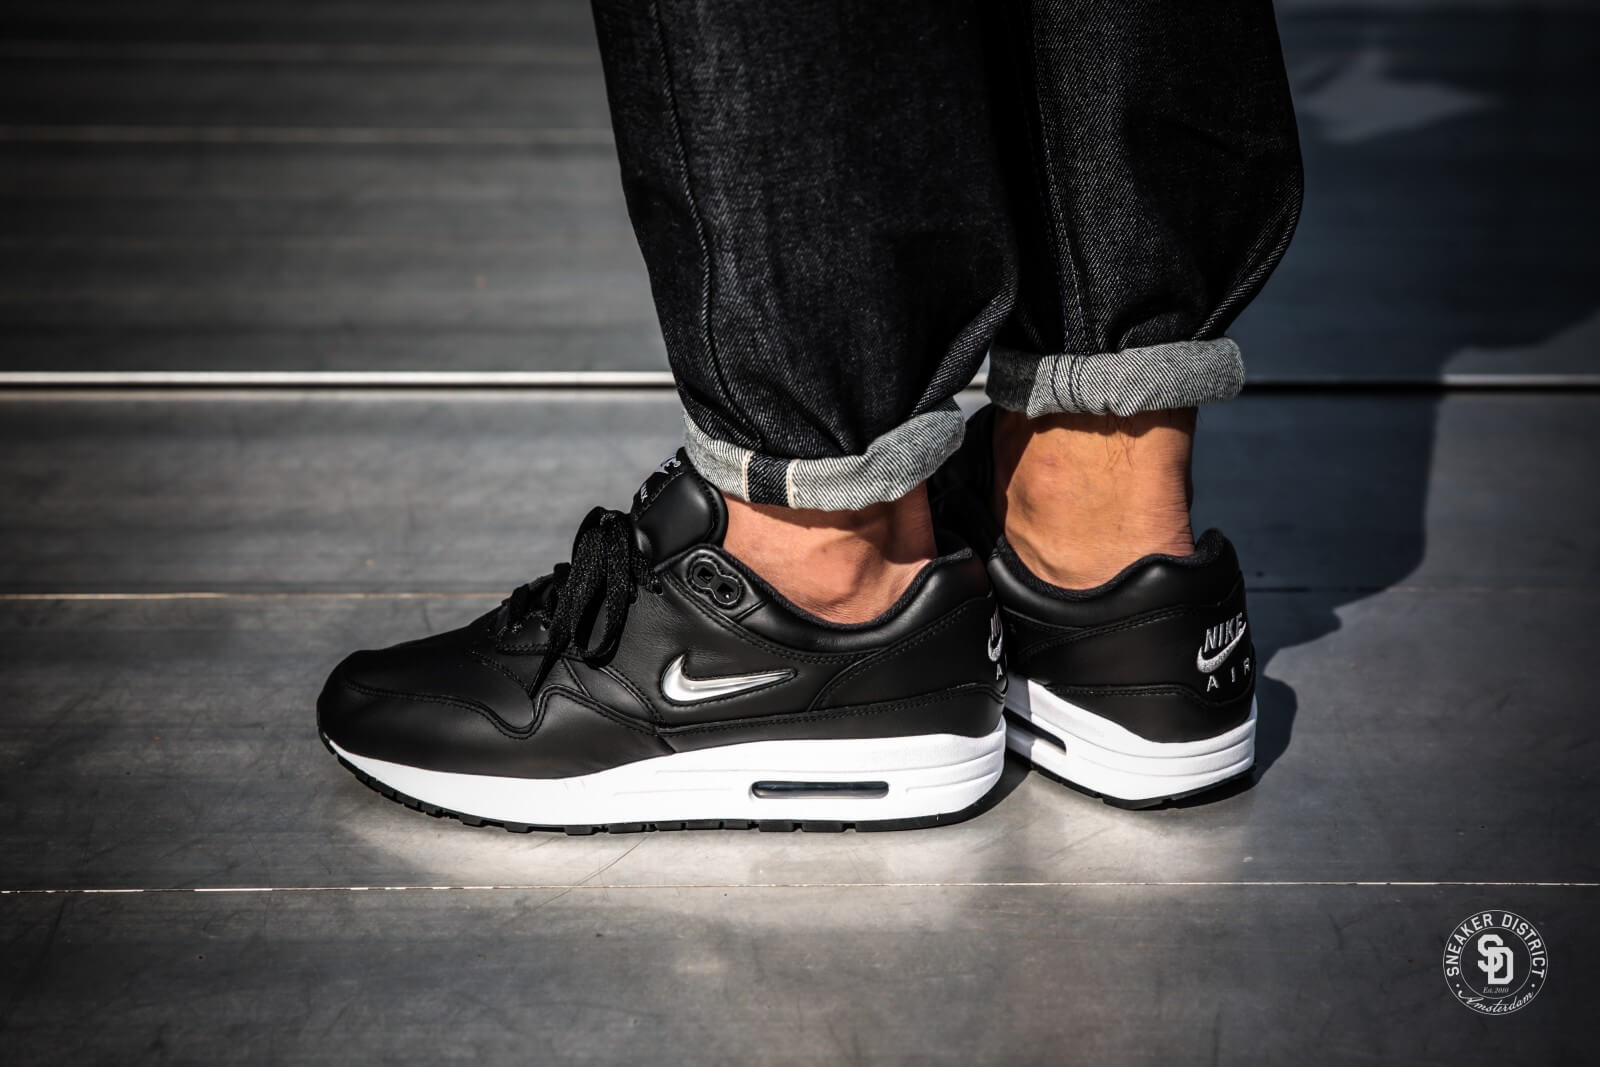 Nike Air Max 1 Premium SC Black/Metallic Silver-White - 918354-001